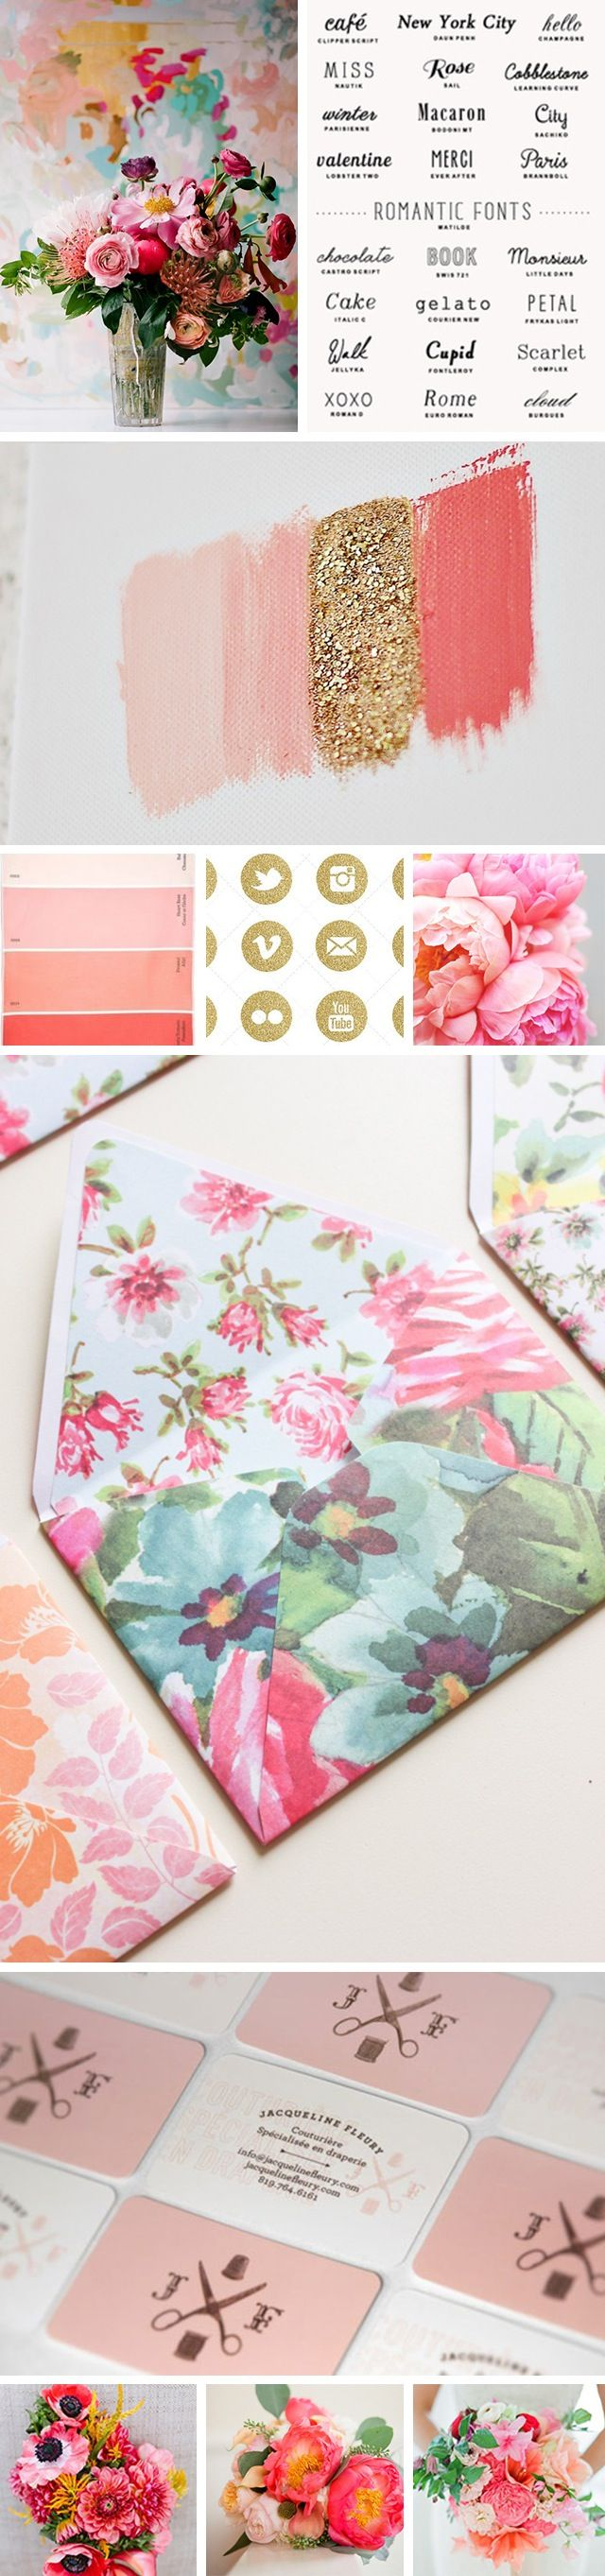 I REALLY LIKE THE PEONIES AND FLORA OF THIS Mood Boards && I would like to incorporate gold glitter somehow- perhaps in a grab button? | blog inspiration board.